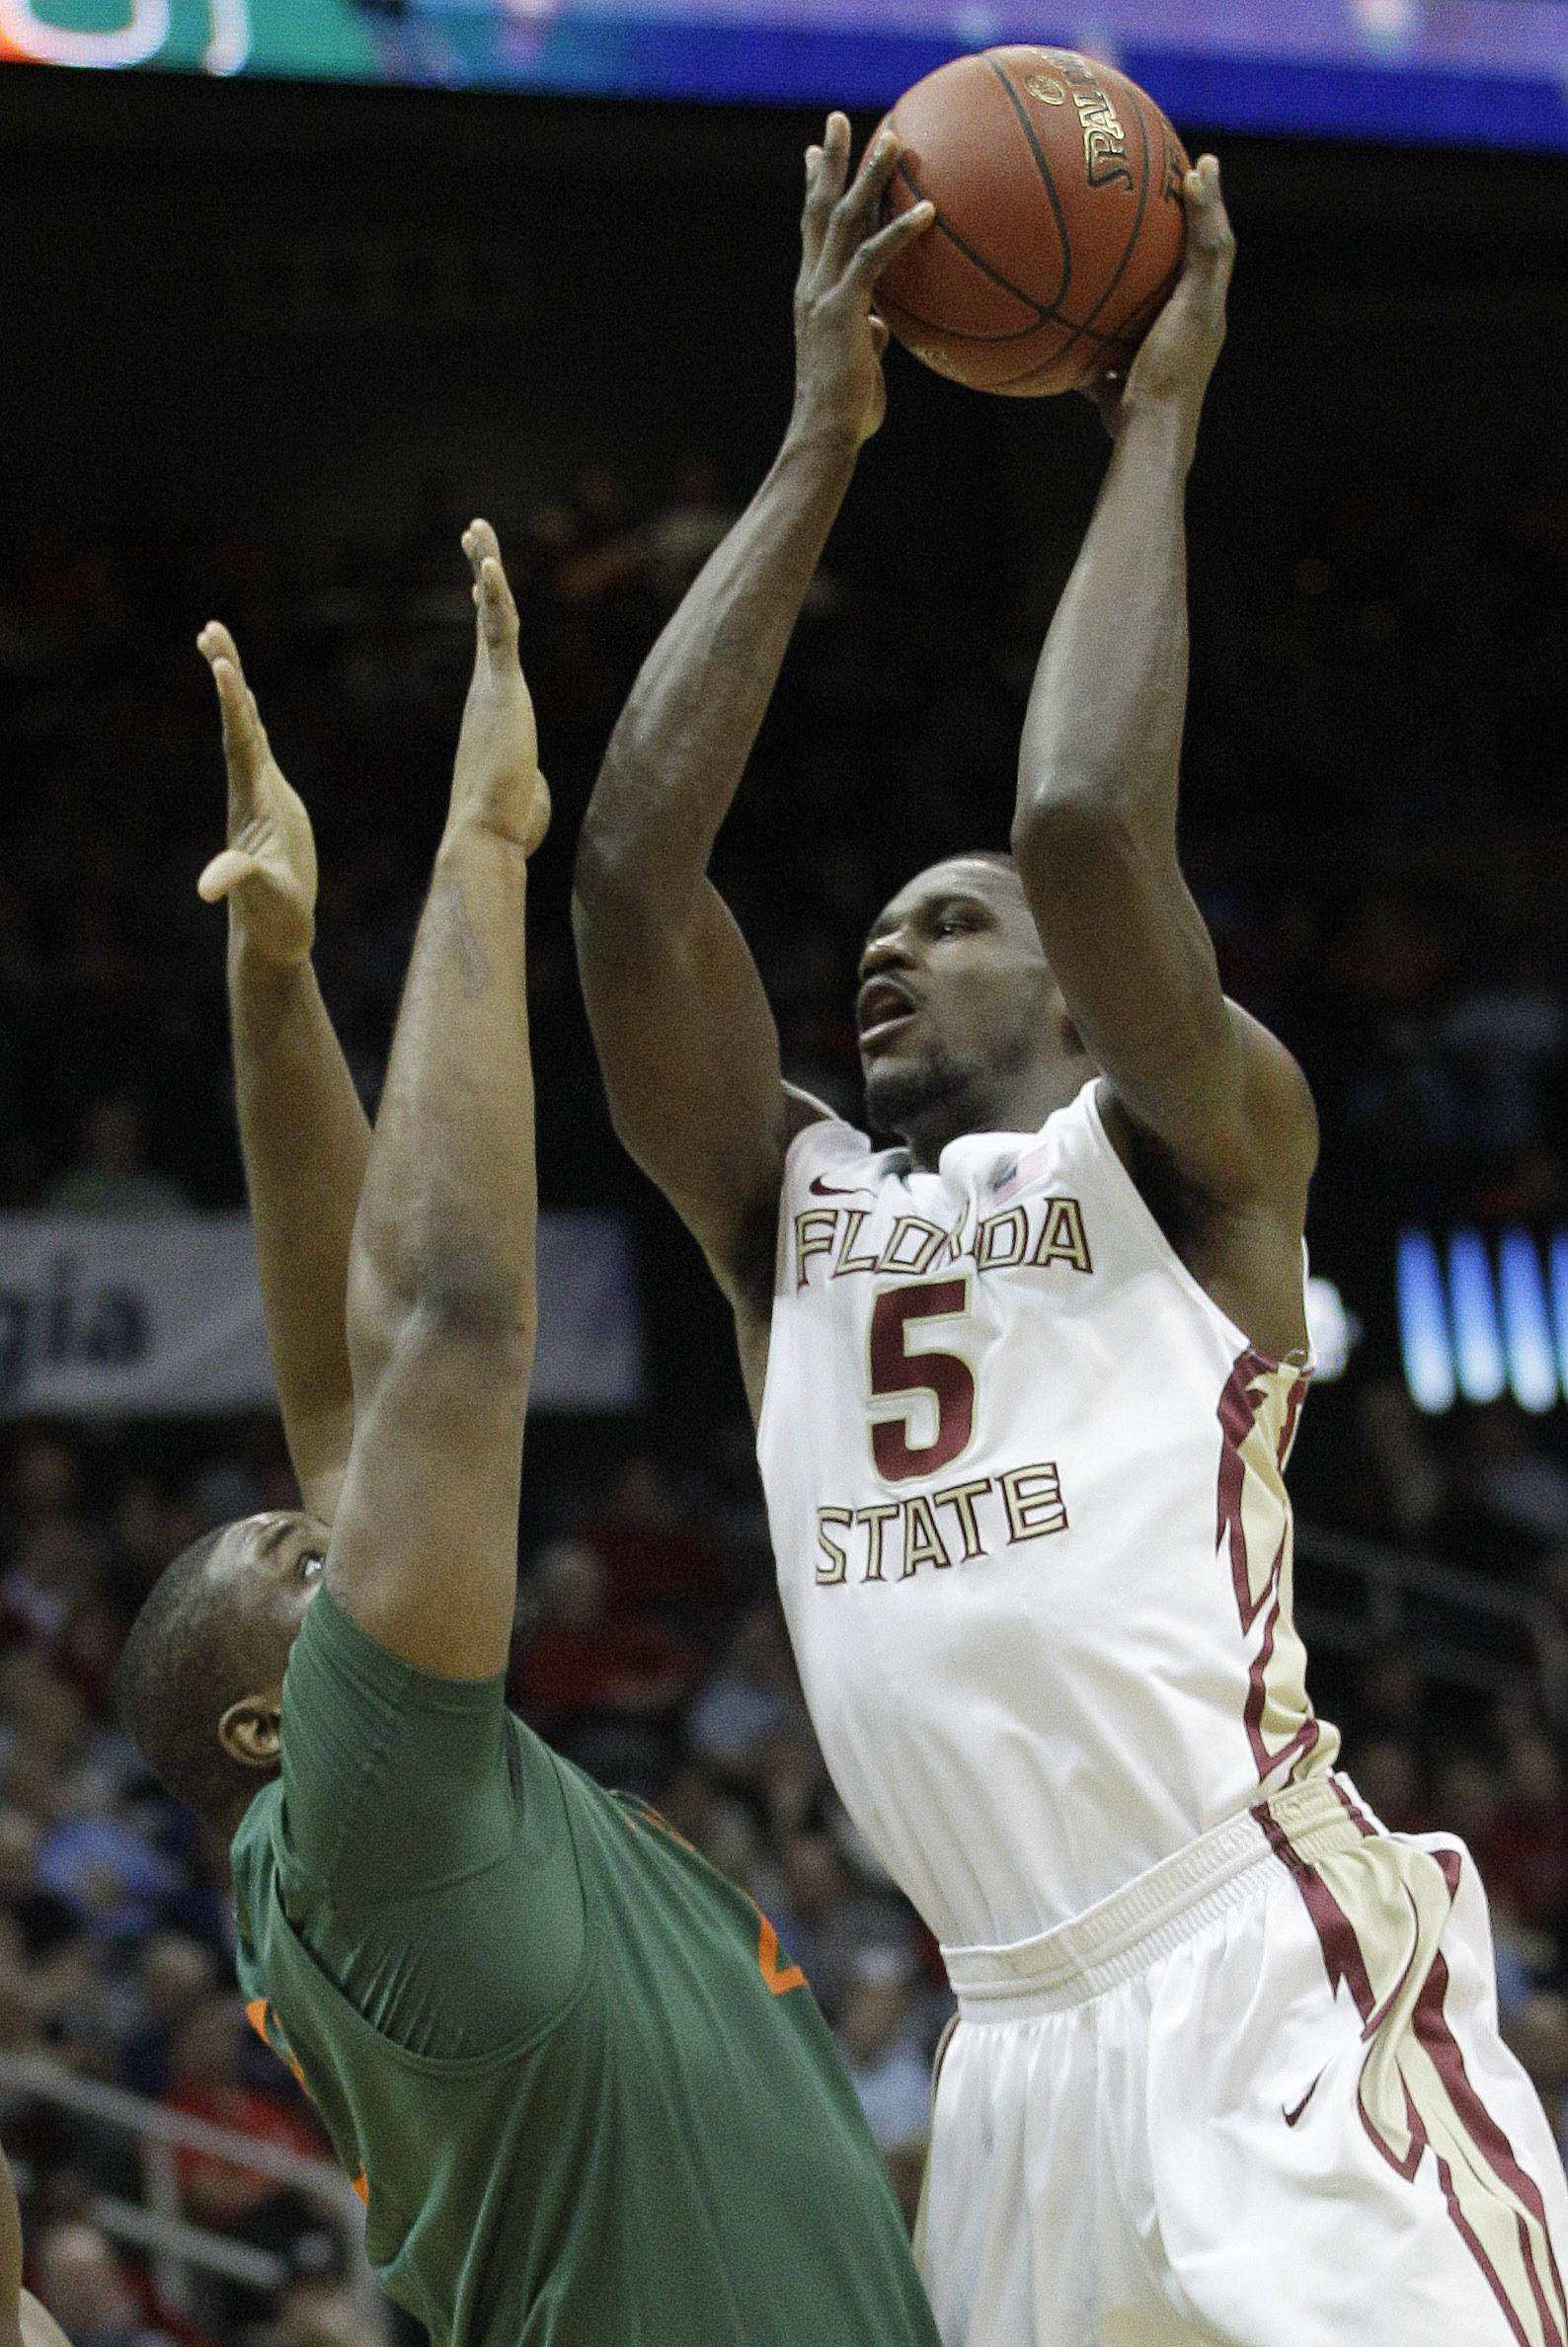 Florida State forward Bernard James (5) works against Miami center Reggie Johnson (42) during the first half of an NCAA college basketball game in the quarterfinals of the Atlantic Coast Conference tournament, Friday, March 9, 2012, in Atlanta. (AP Photo/Chuck Burton)